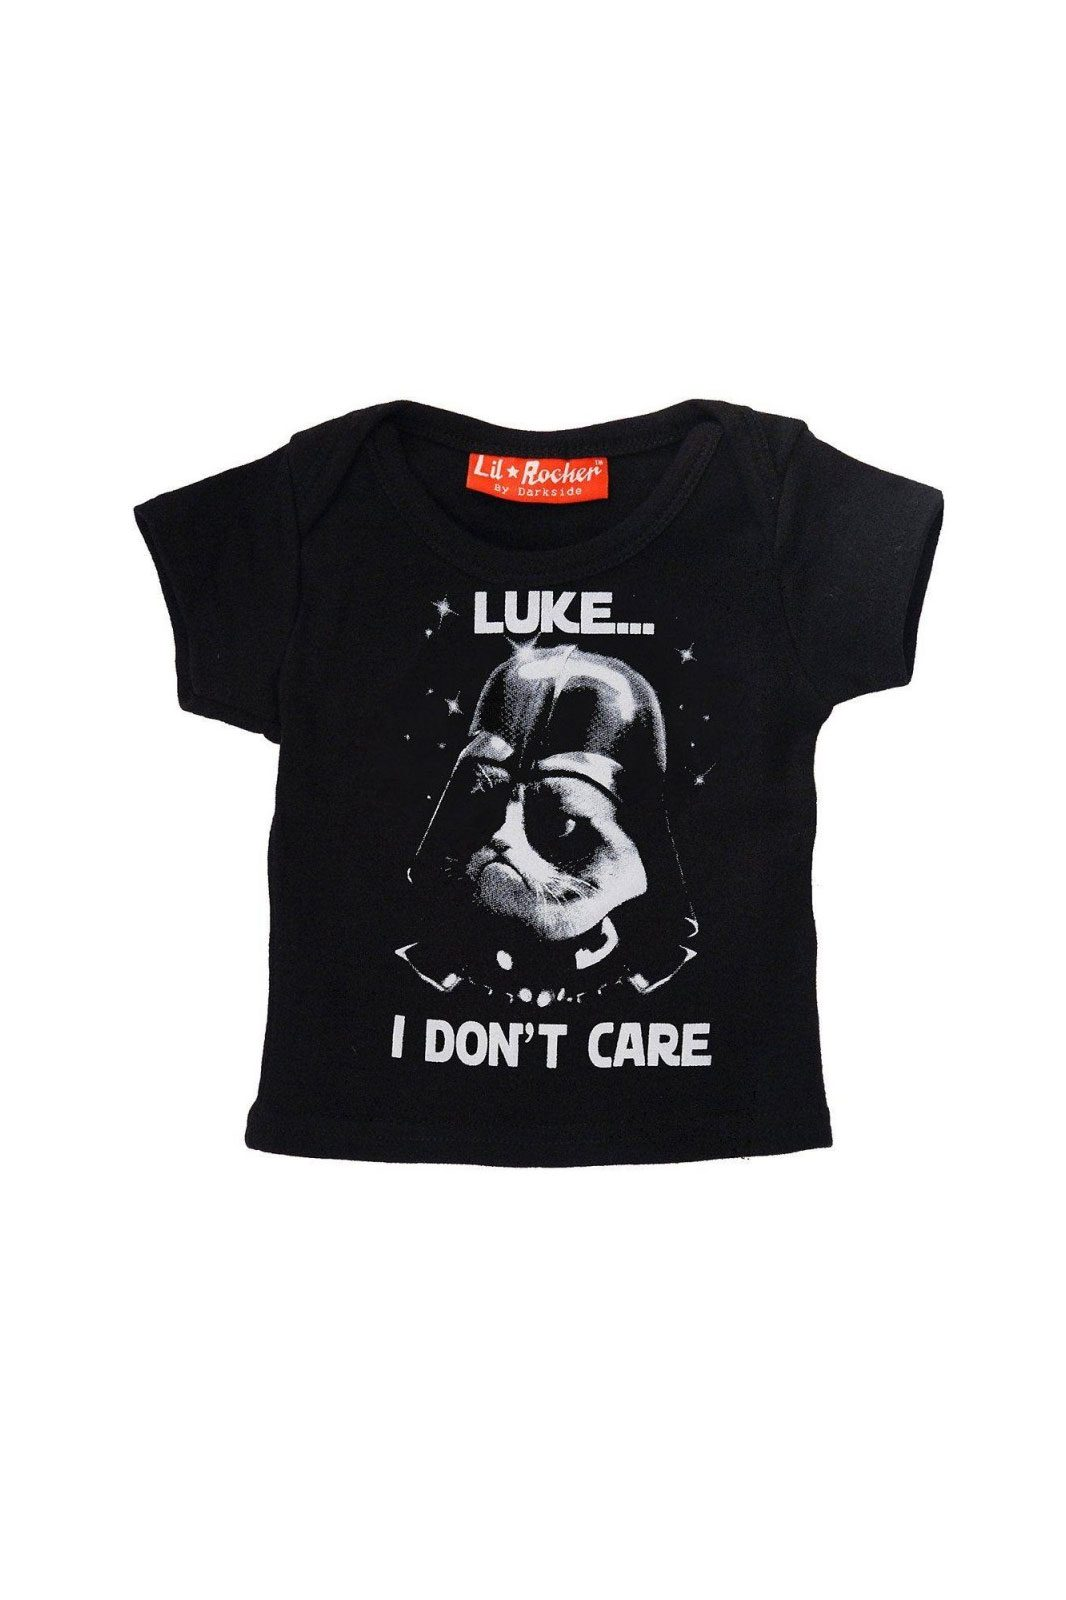 Luke I Dont Care Baby Tee